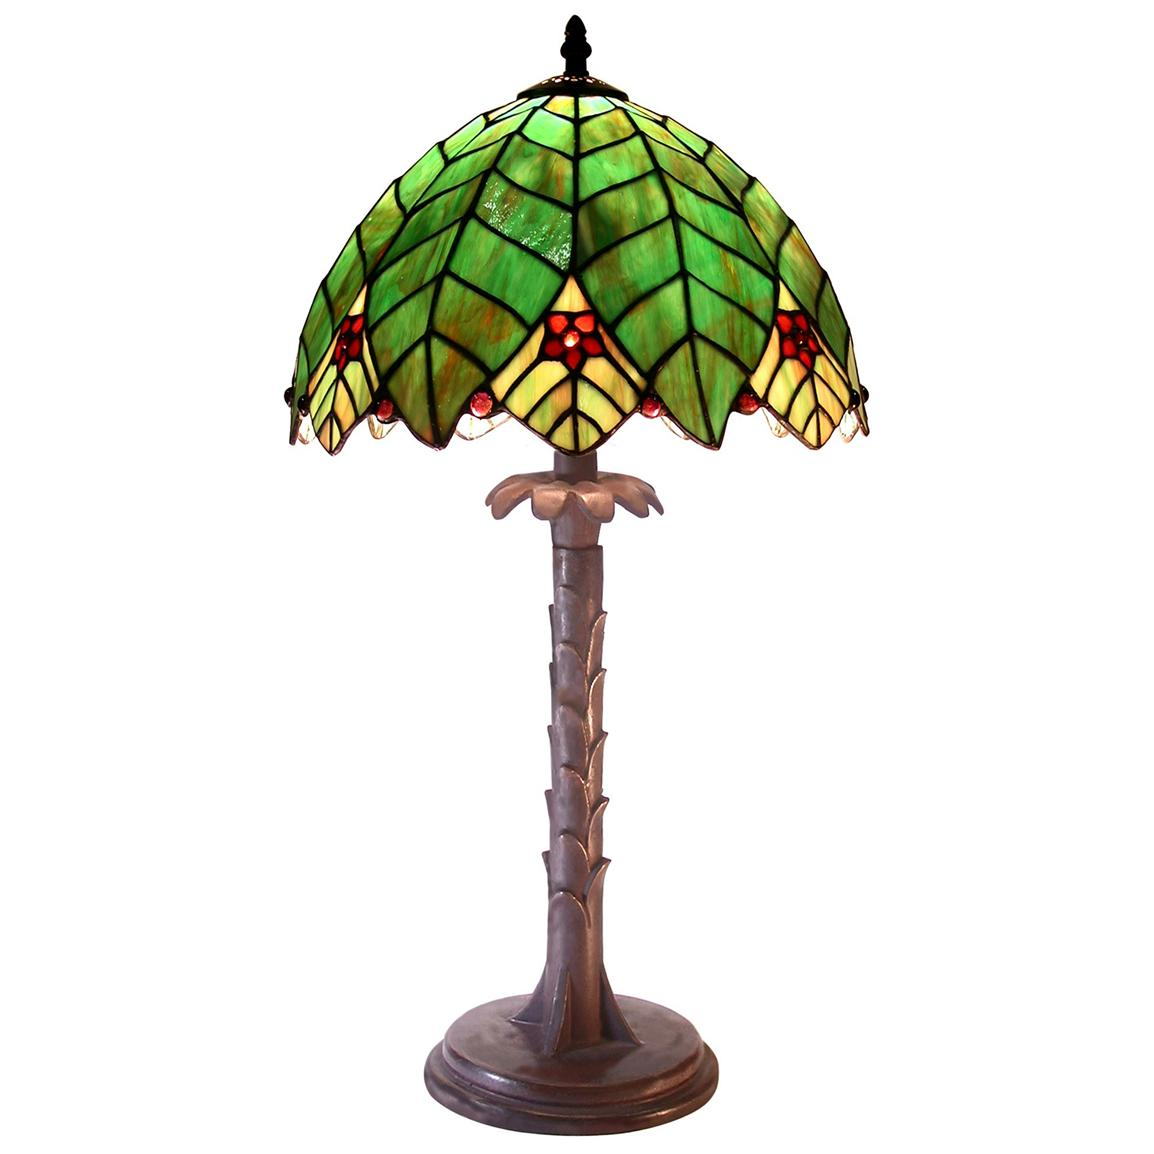 Tiffany-style Palm Tree-shaped Table Lamp